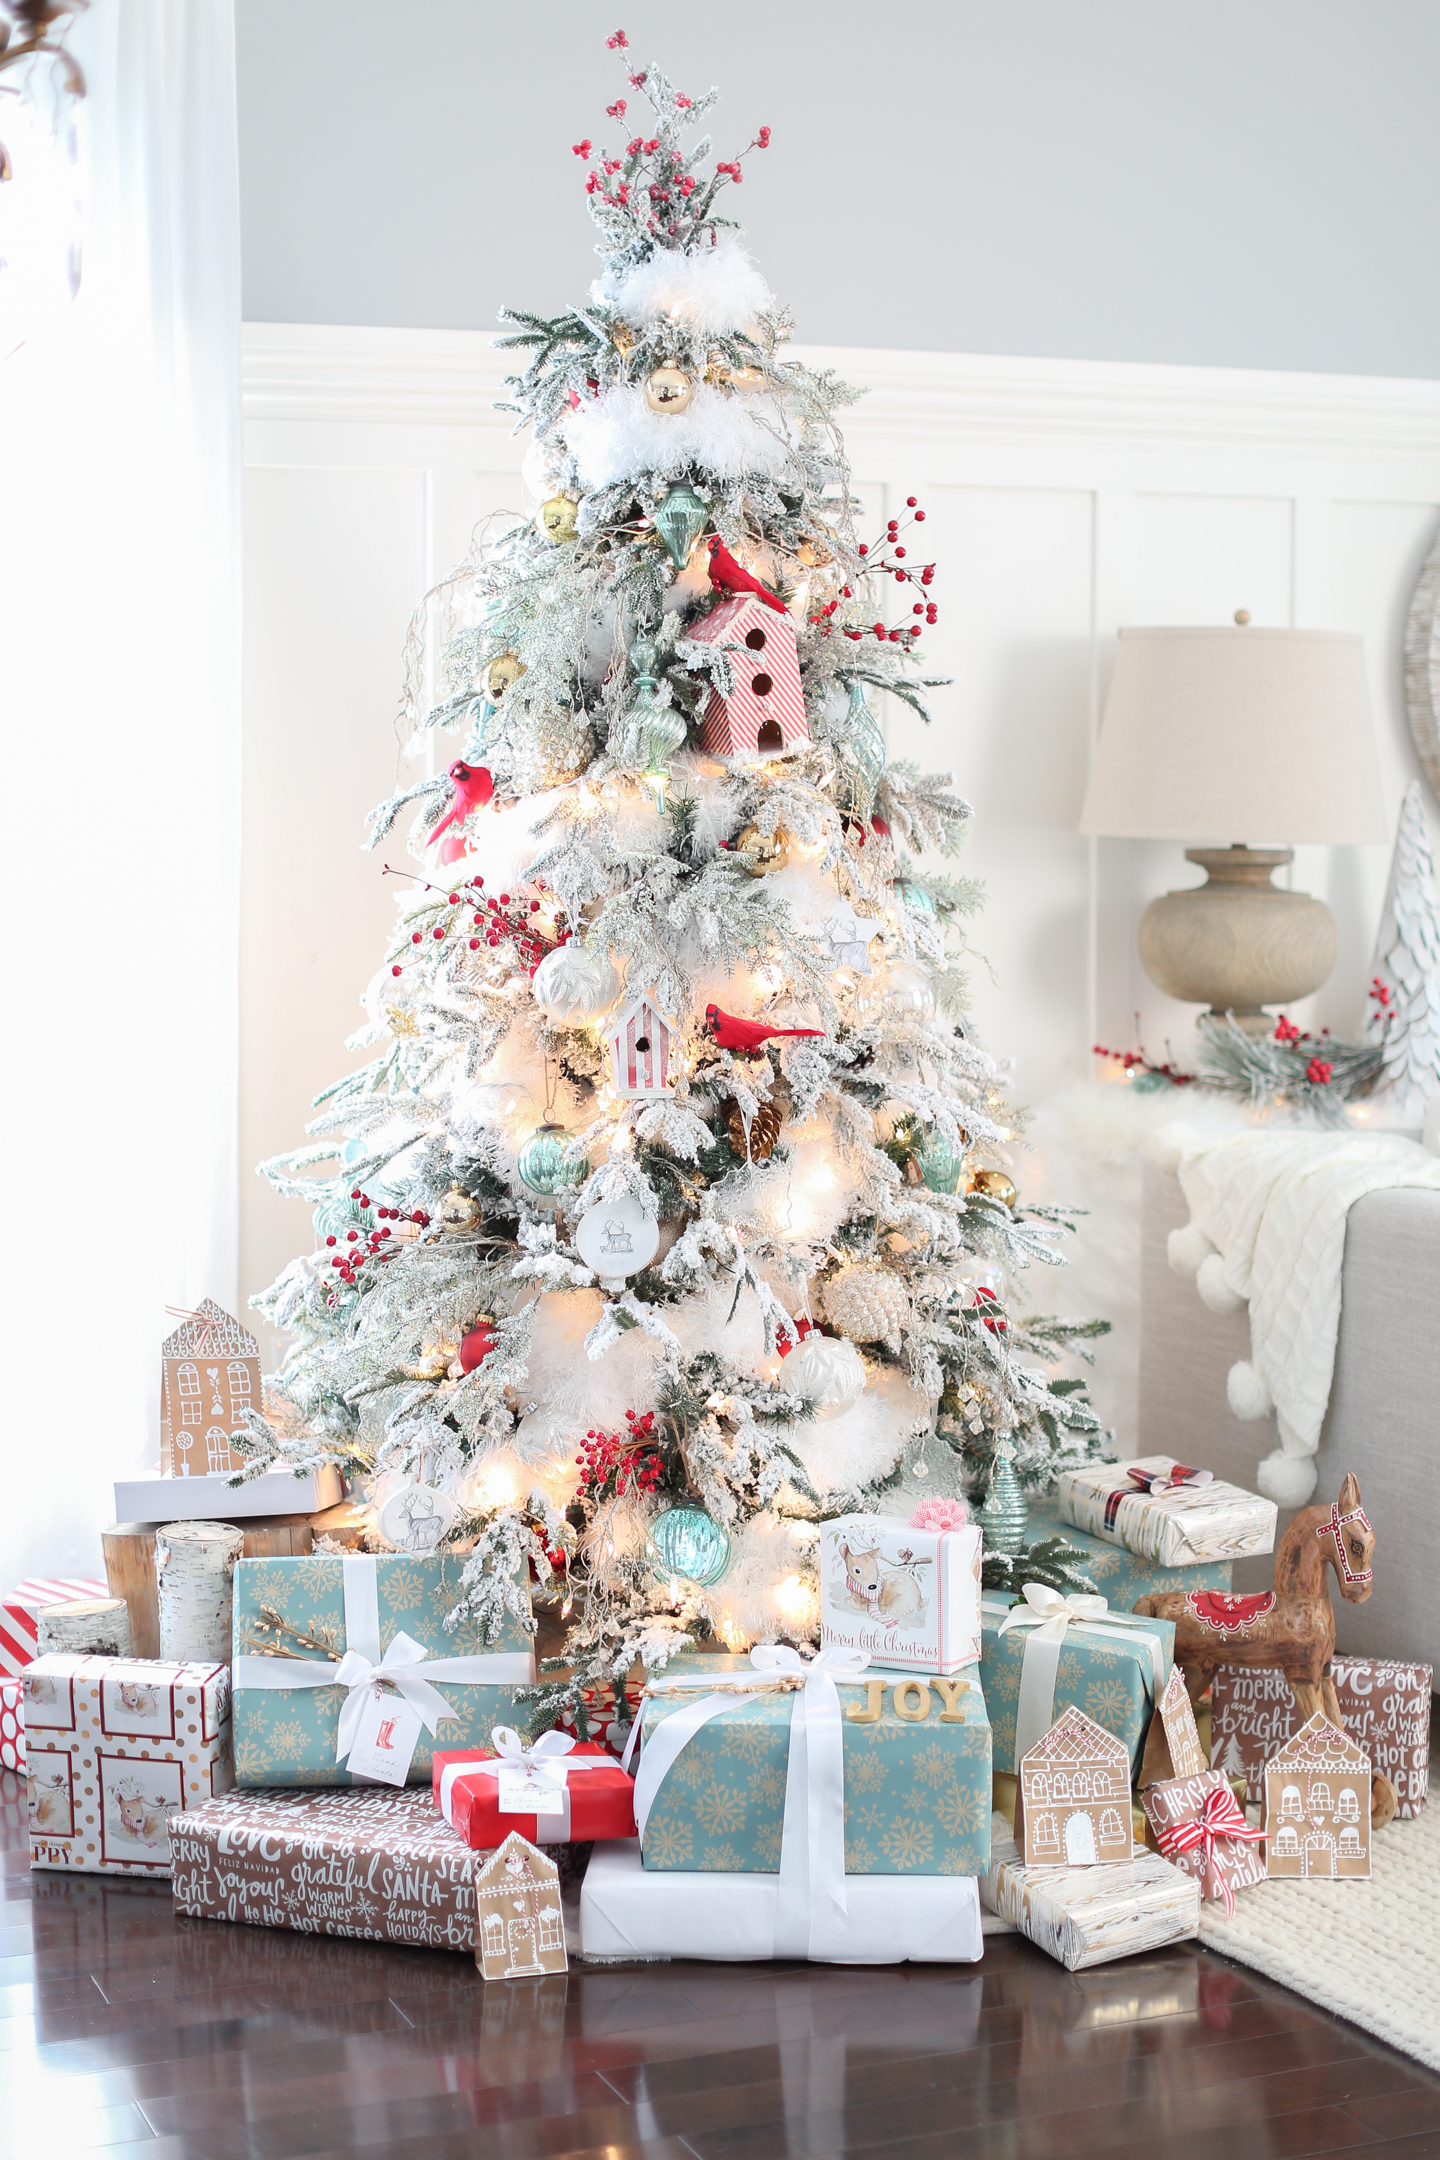 10 Beautiful Christmas Tree Ideas - Craft-O-Maniac